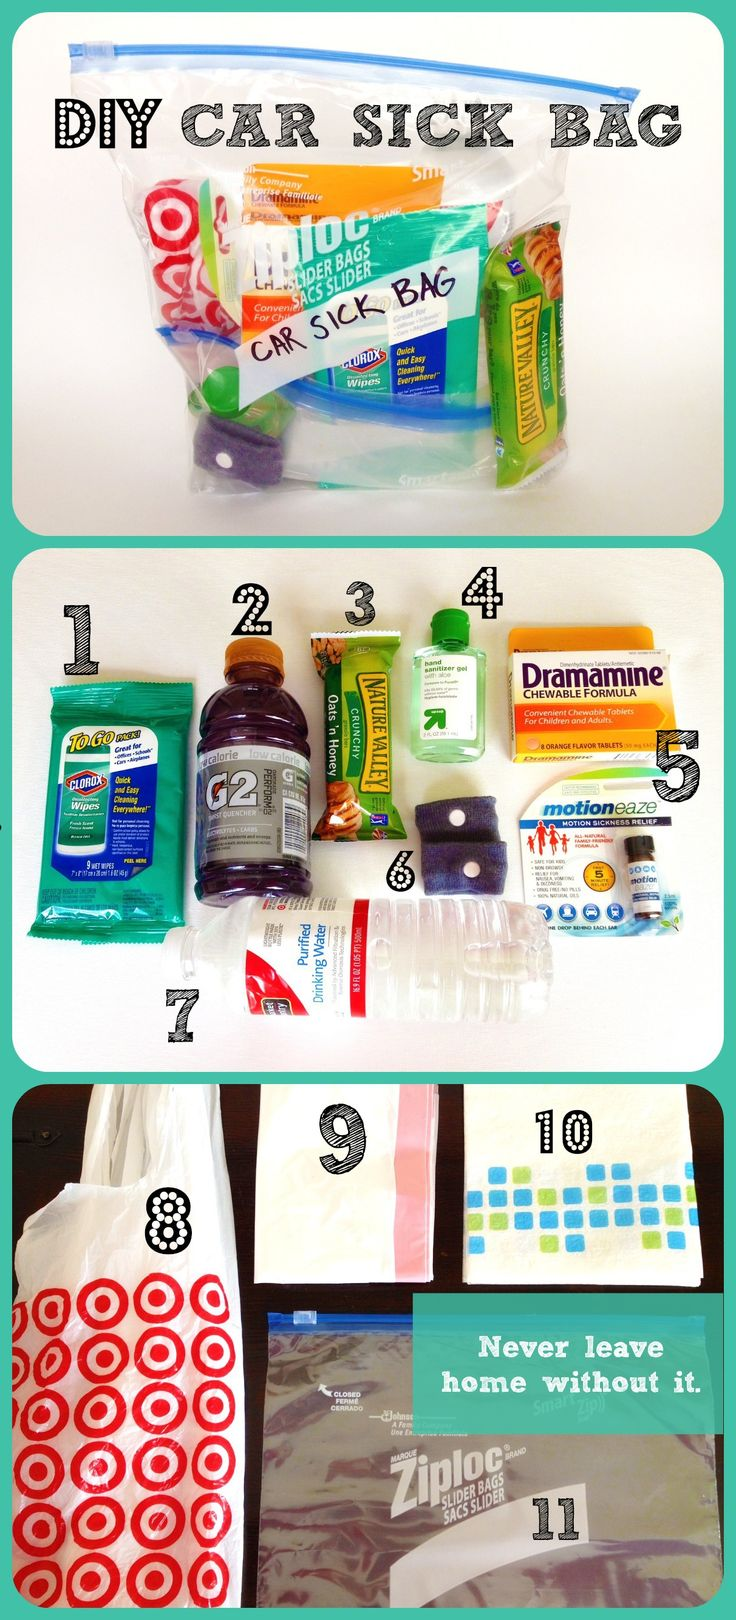 DIY Car Sick Bag:  Great addition to a car kit for emergencies!